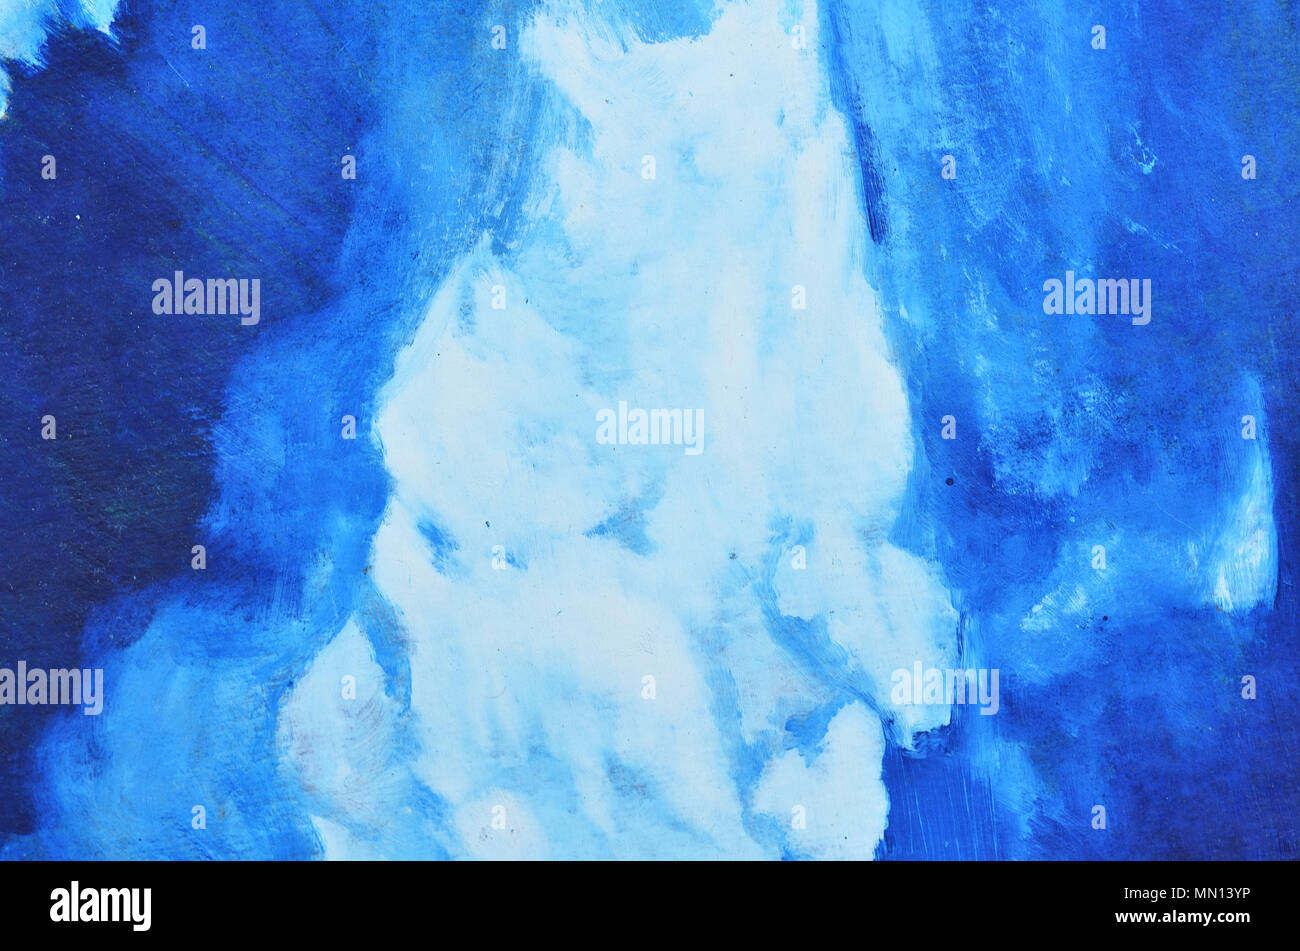 White And Blue Watercolor Paints Are Mixed On Canvas Texture Wallpaper Background Stock Photo Alamy